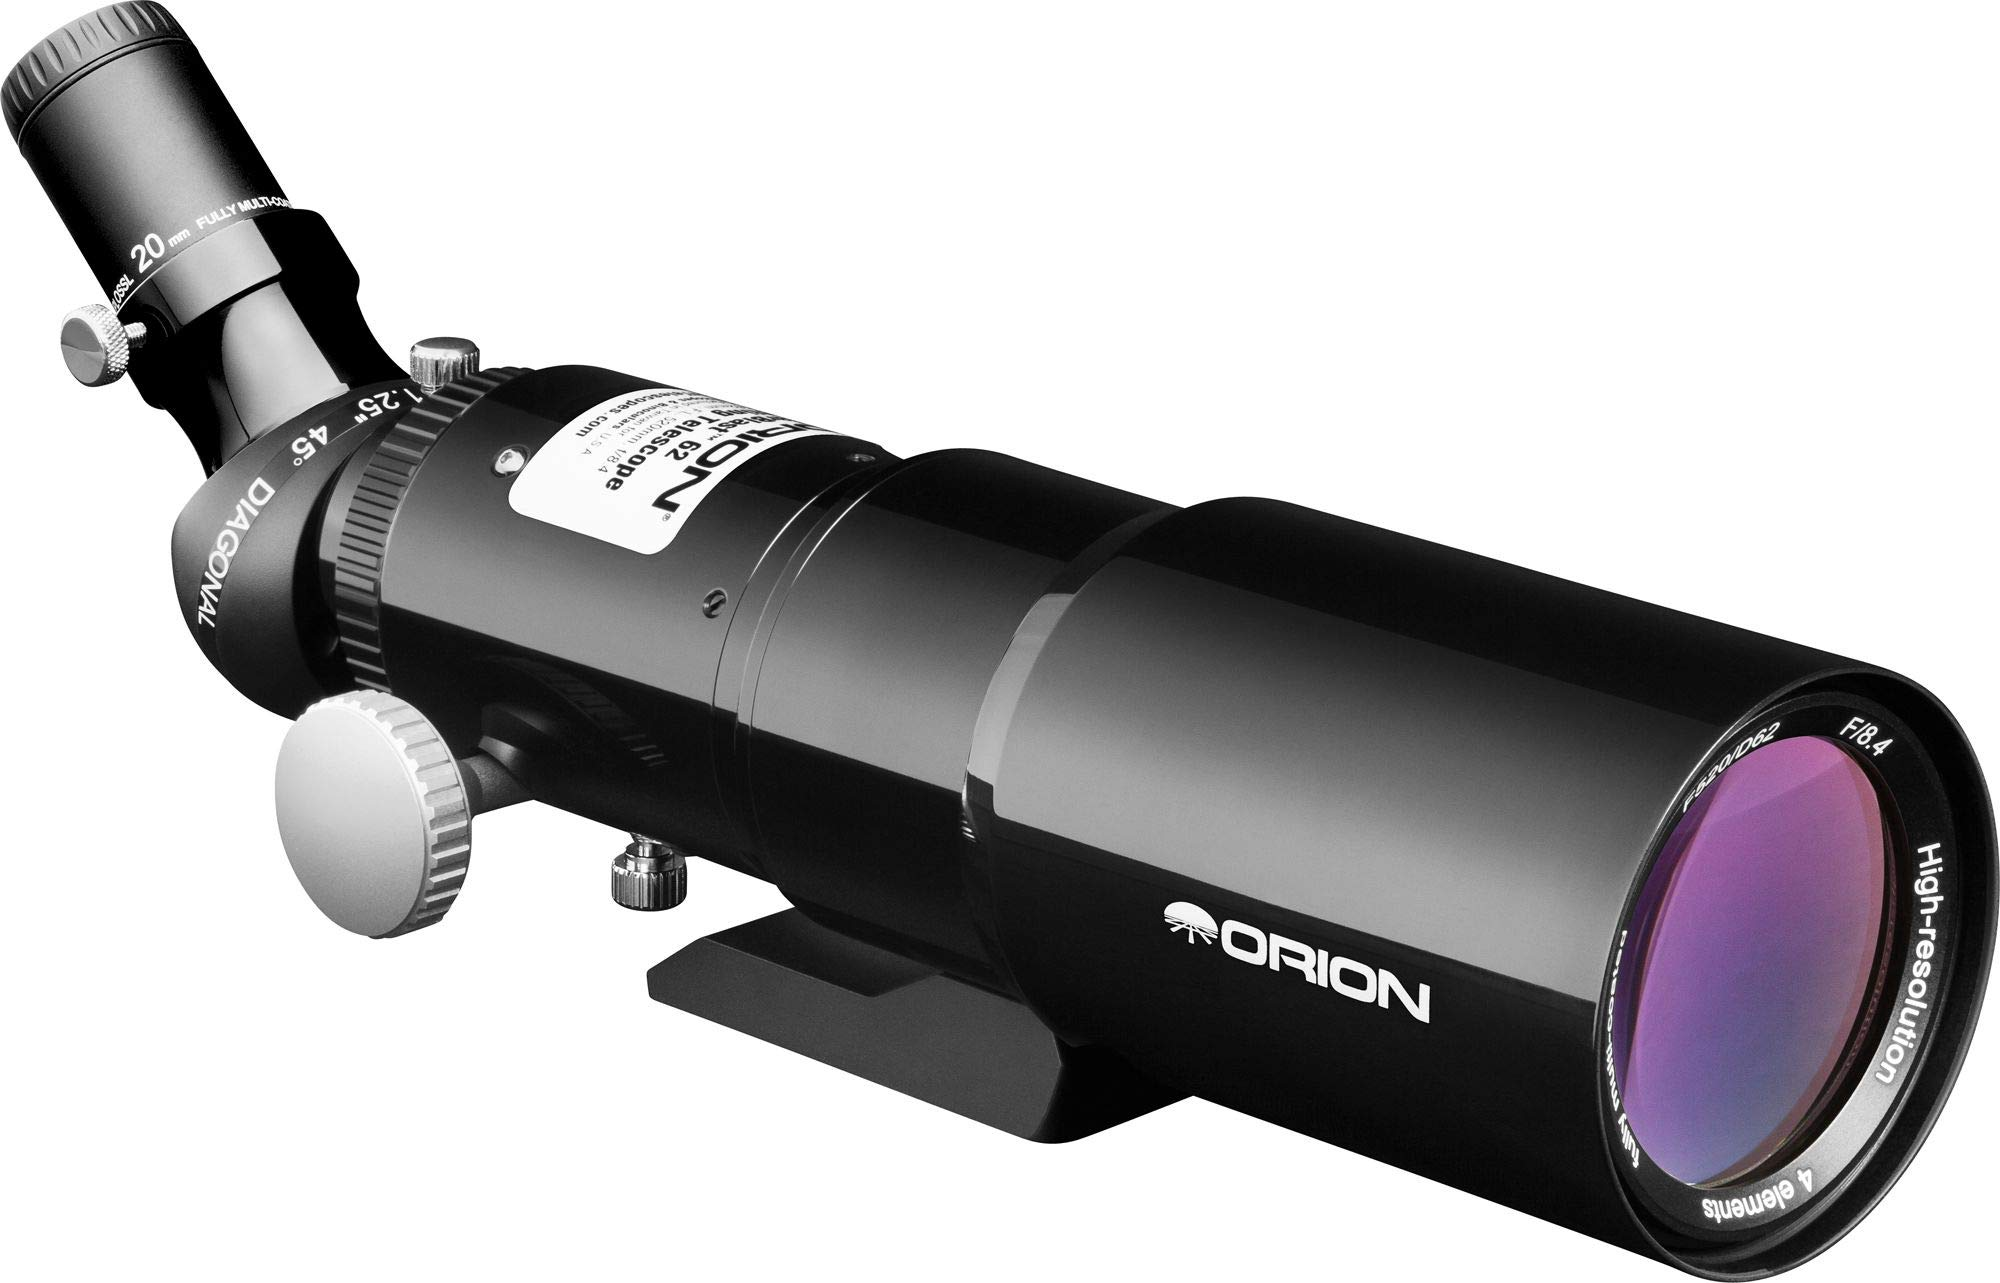 Orion 10149 StarBlast 62mm Compact Travel Refractor Telescope (Black) by Orion